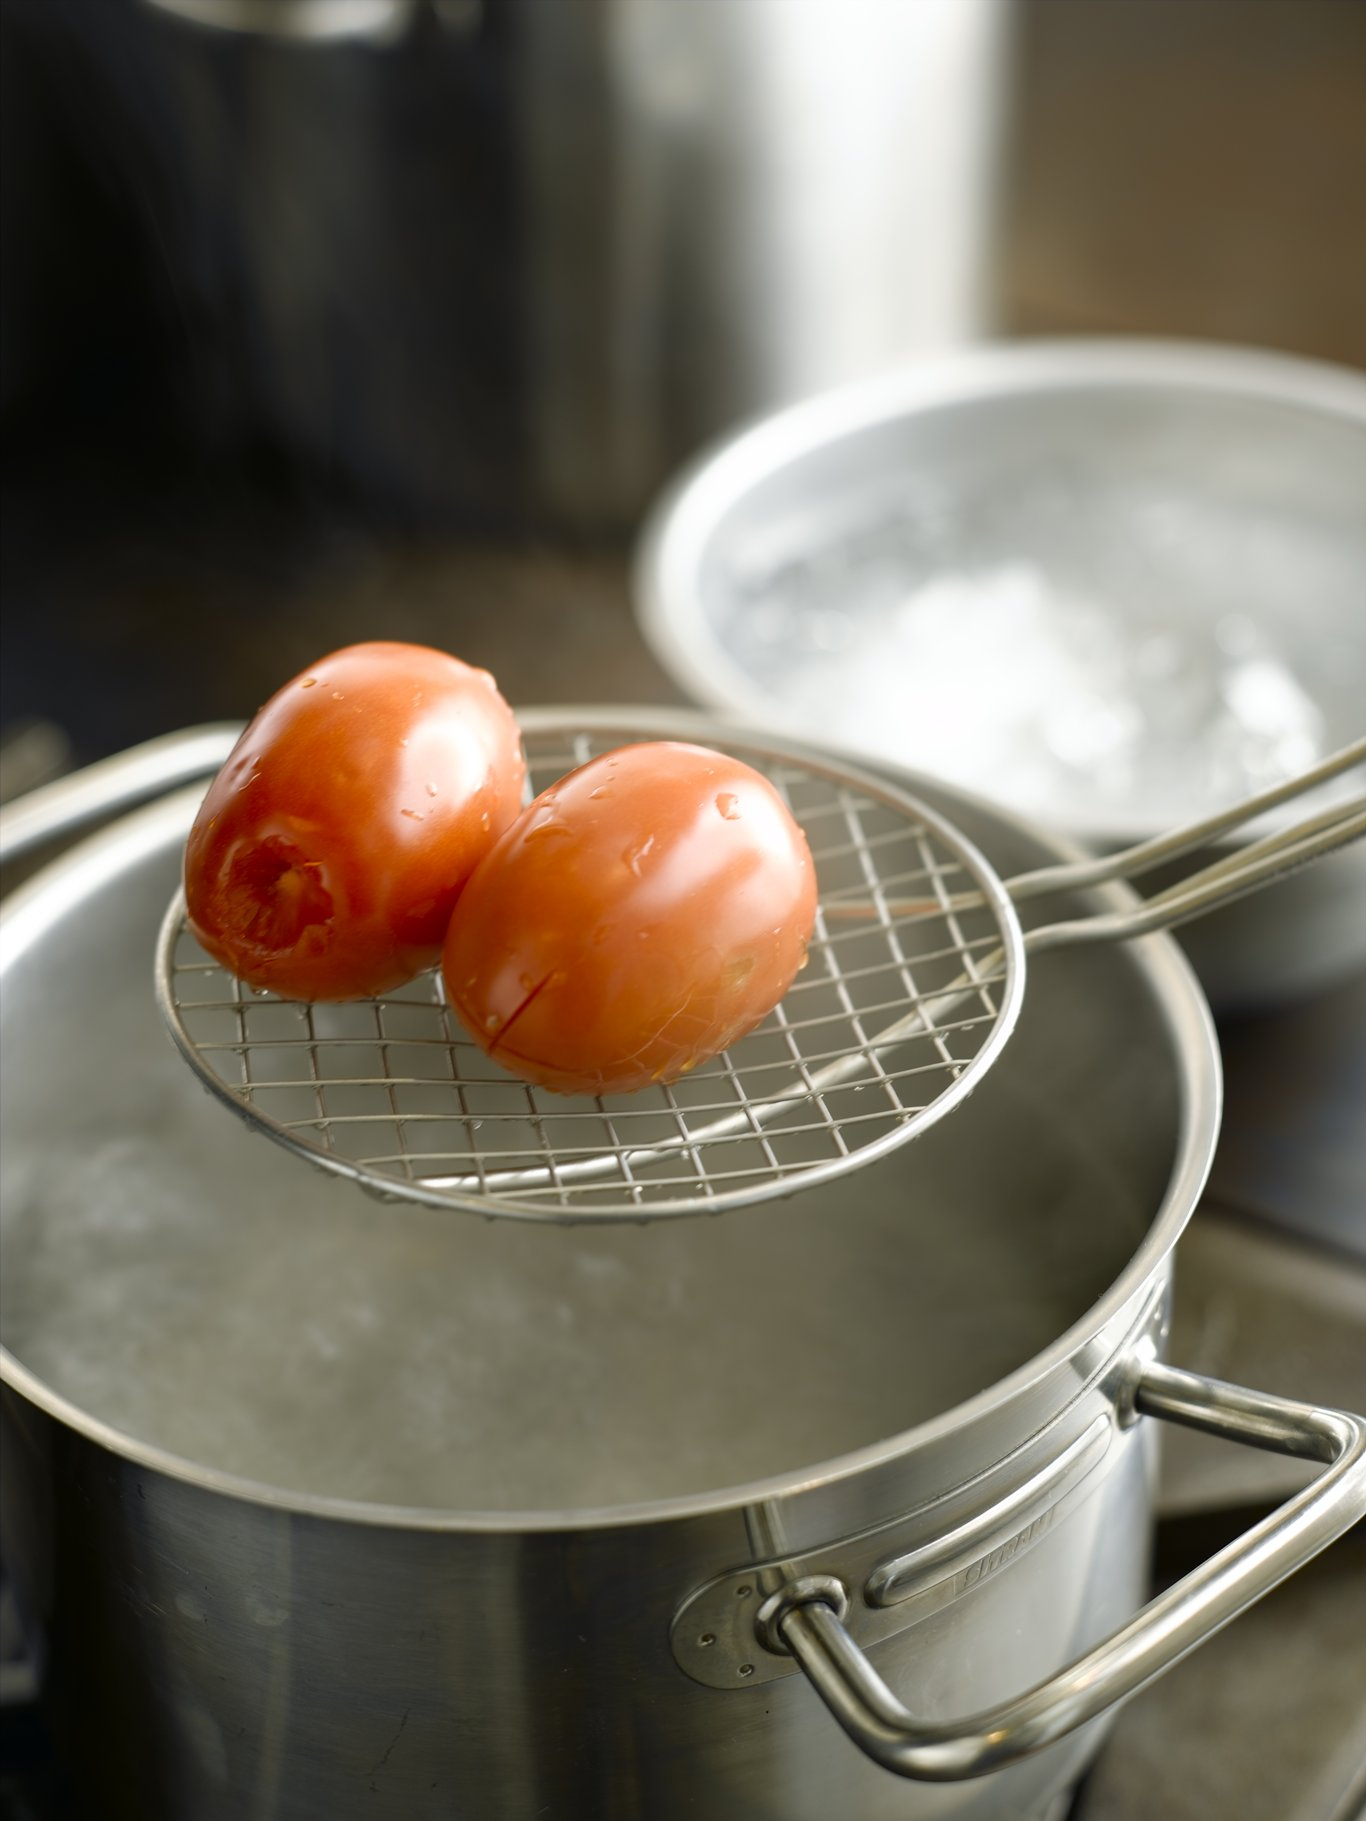 After leaving the tomatoes in boiling water for 10 to 15 seconds, remove with slotted spoon, skimmer, or spider.